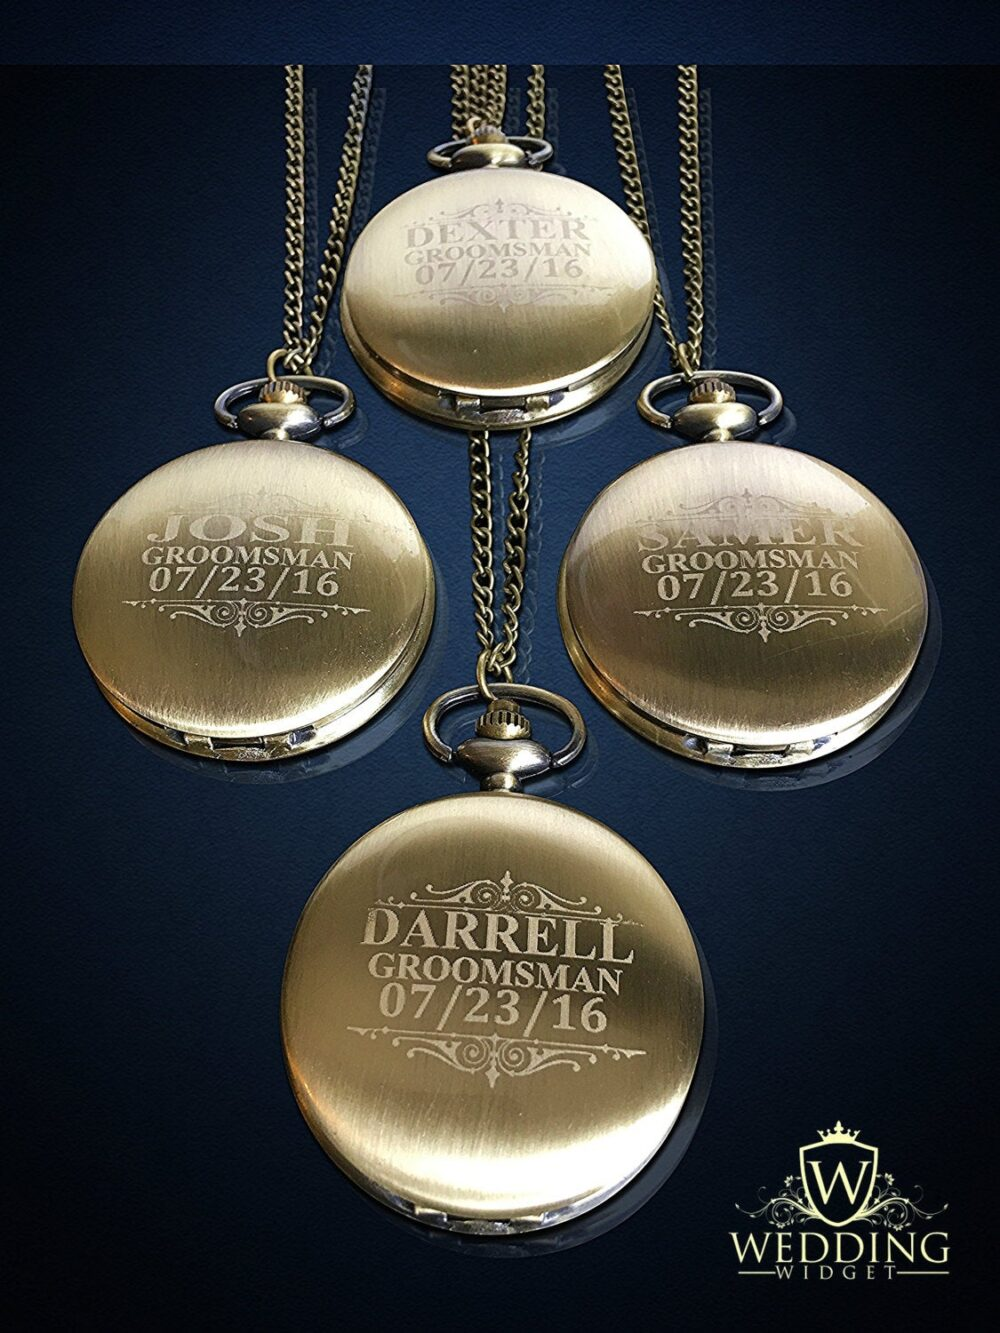 4 Personalized Pocket Watches - Bride & Groom Gift Groomsmen Wedding Set Best Man Of Honor Personalized